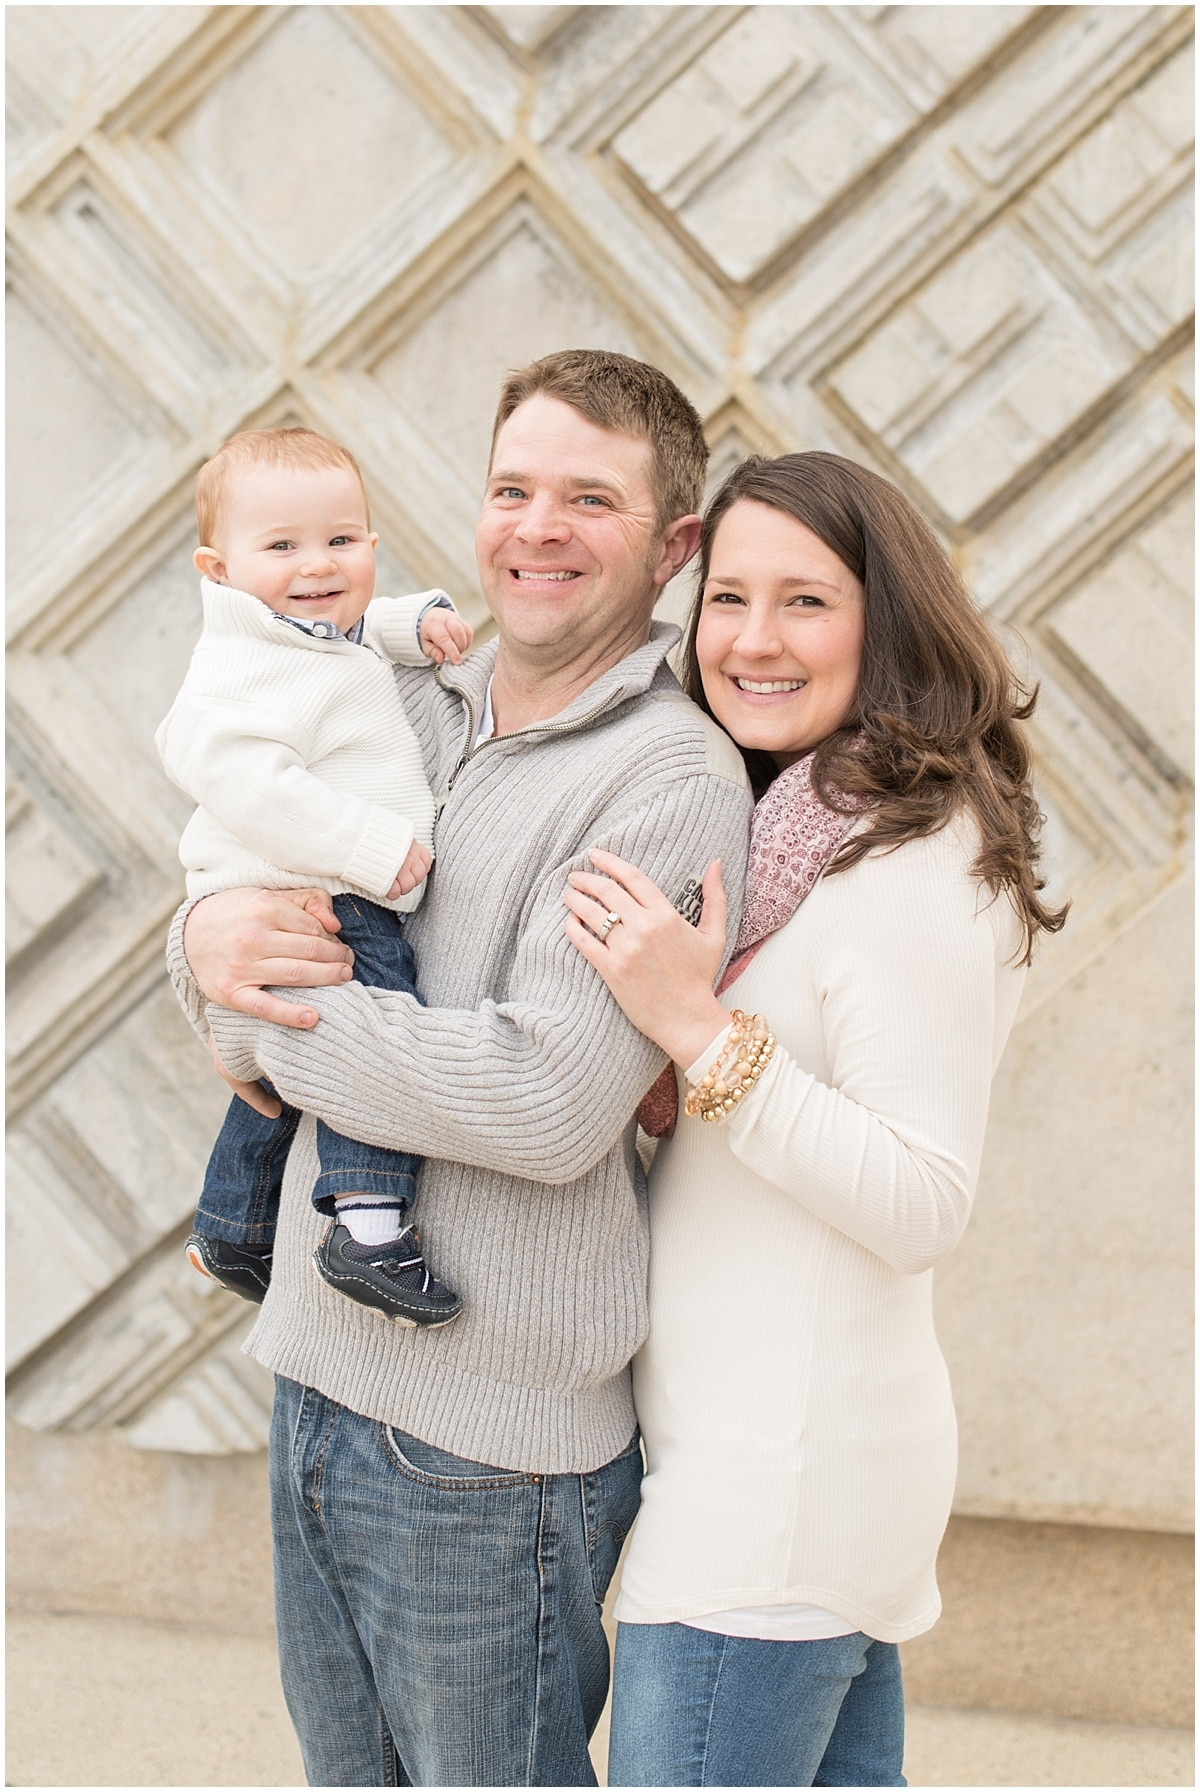 David, Colleen, and Joshua Jackson's family photos at Purdue University in West Lafayette, Indiana